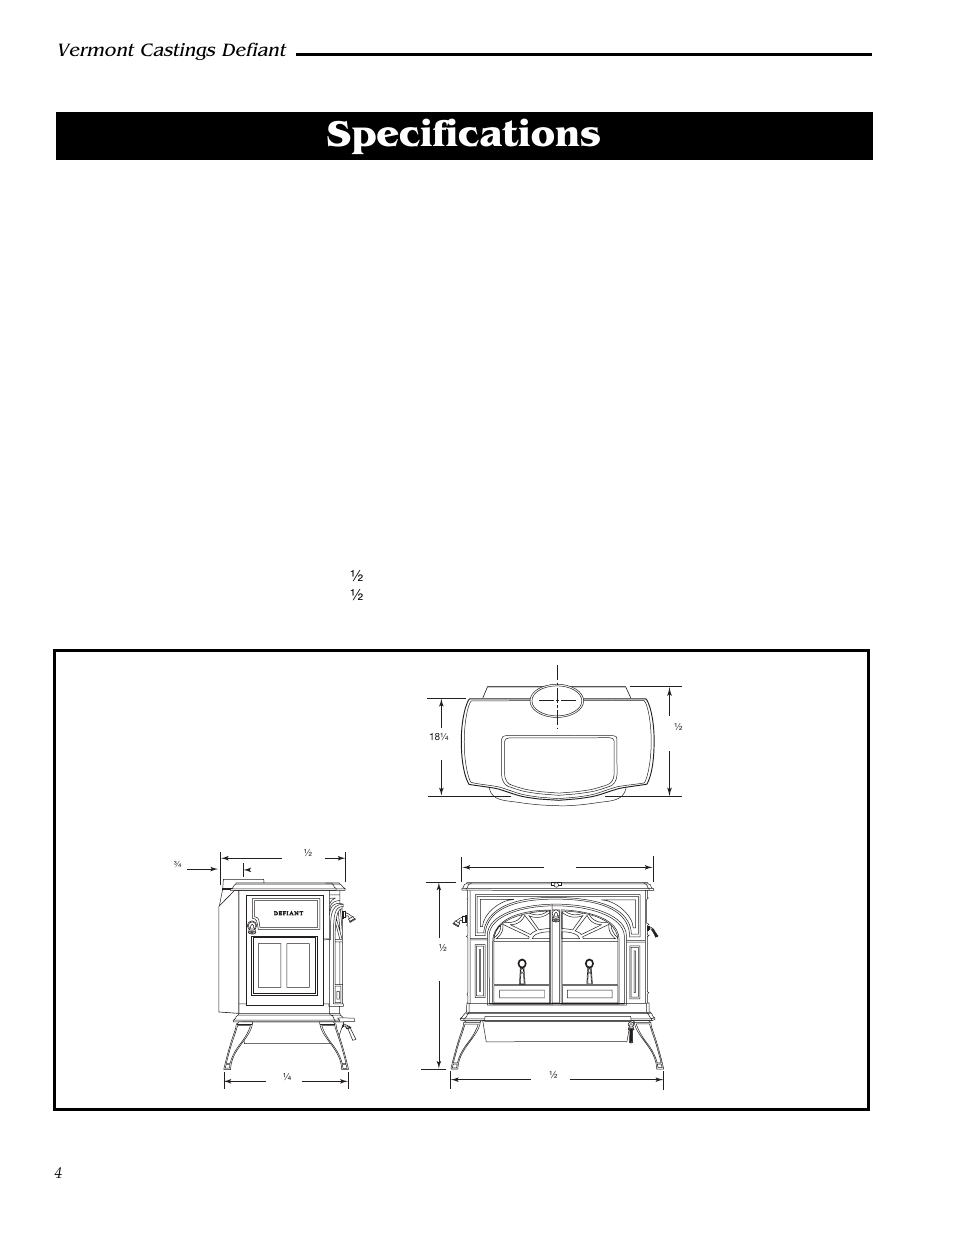 specifications defiant model 1910 vermont castings defiant rh manualsdir com vermont castings defiant encore wood stove manual vermont castings defiant 1610 manual